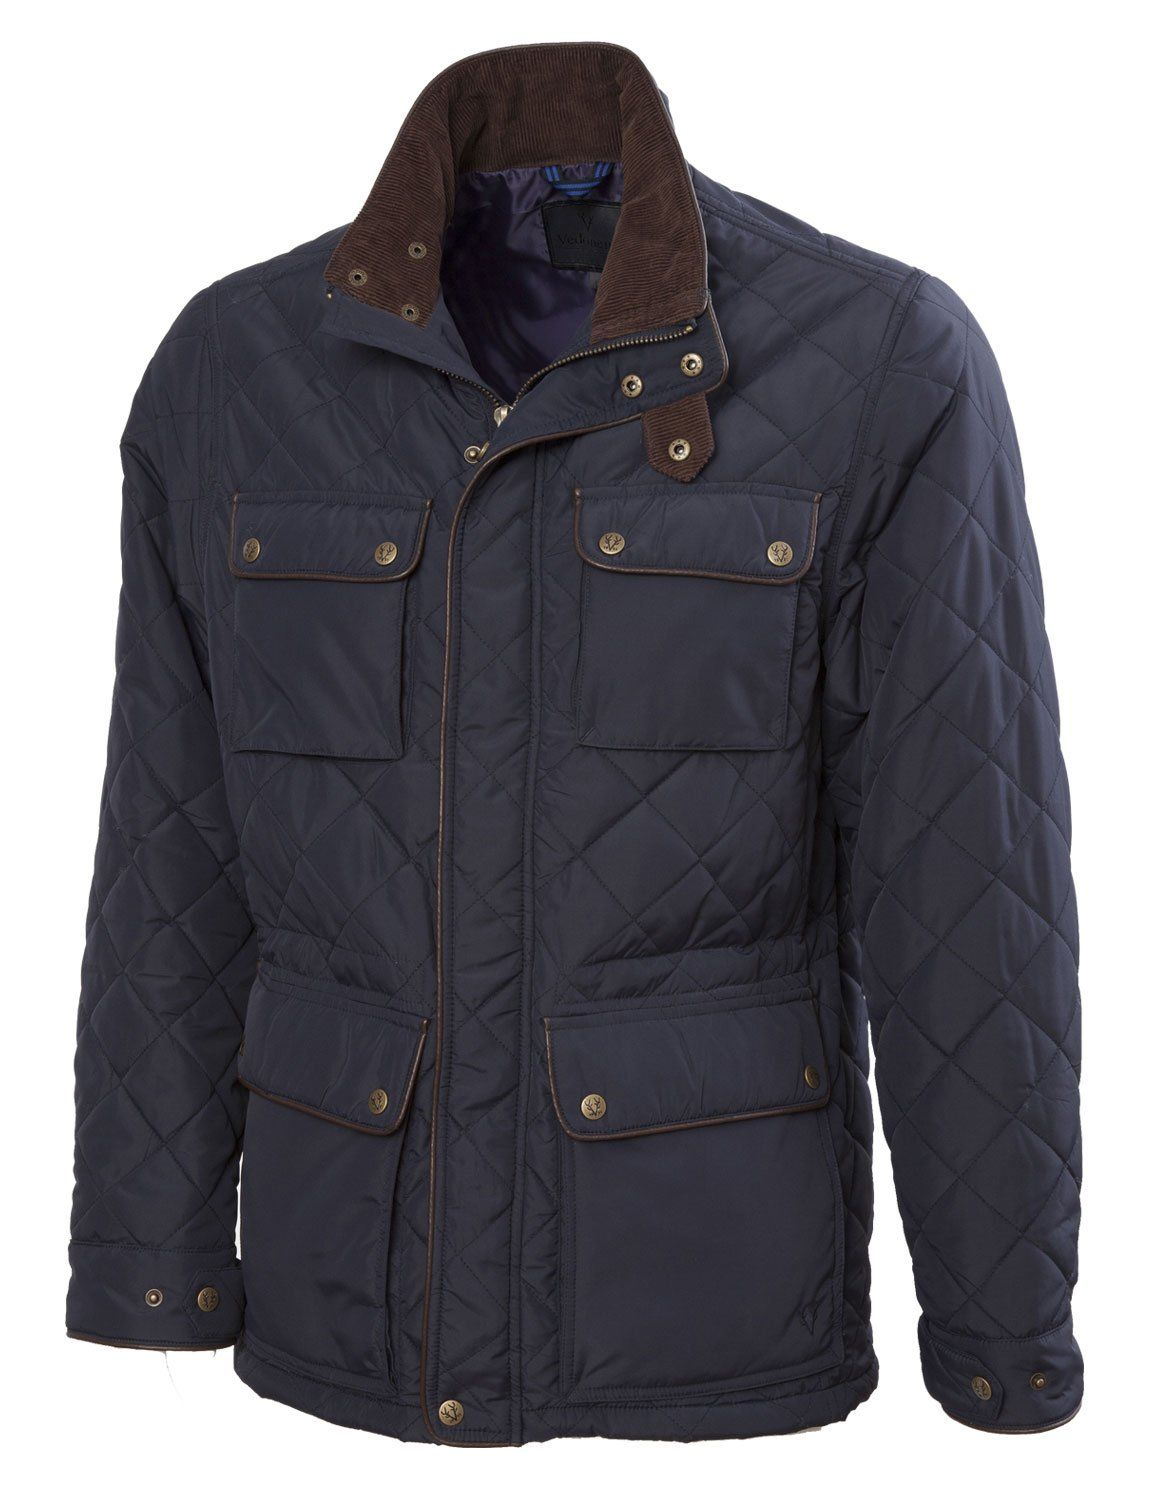 326f47b1bd3 VEDONEIRE Mens Quilted Jacket (3037) NAVY with leather trim at Amazon Men s  Clothing store  Down Alternative Outerwear Coats